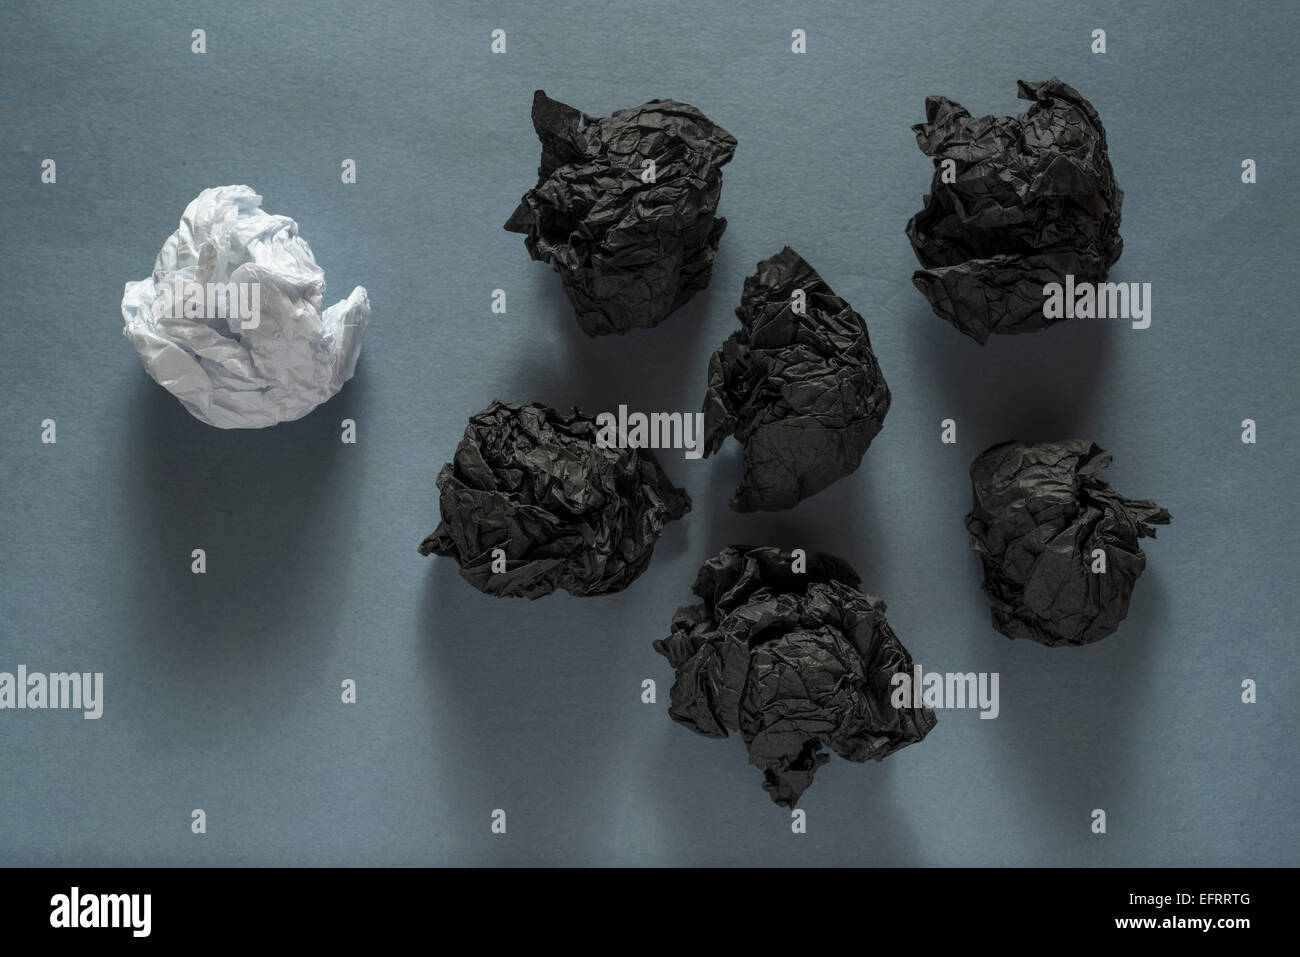 black crumpled paper ball and different white crumpled paper ball on a grey background - Stock Image